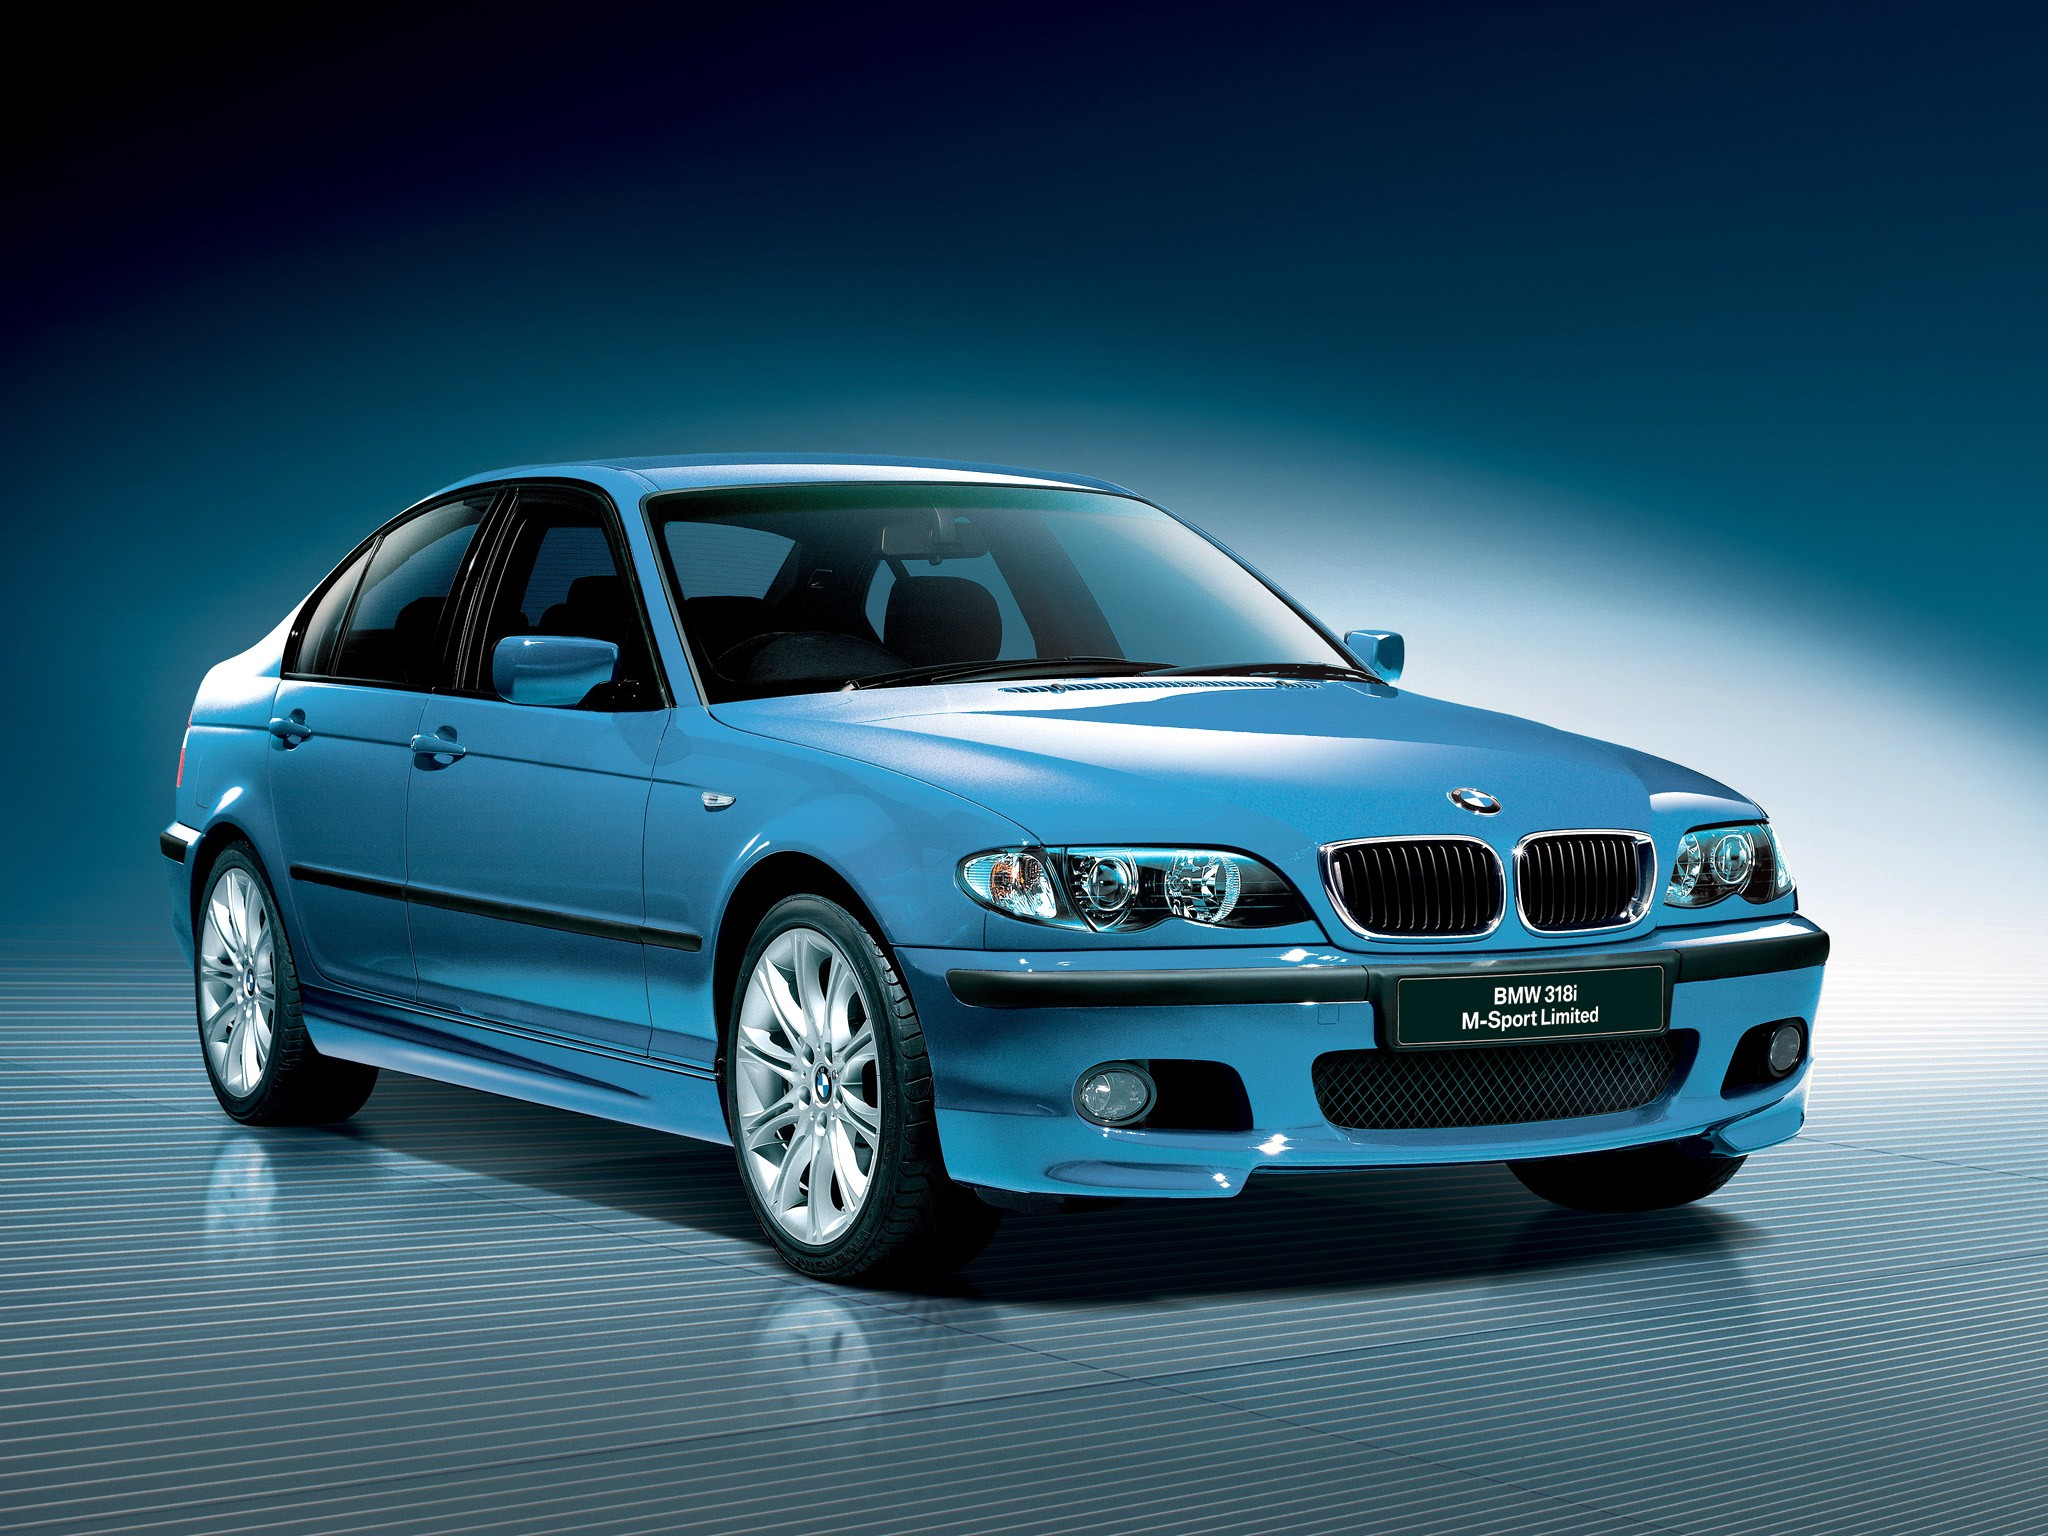 2004 Bmw 325ci Specs >> BMW 3 Series (E46) specs & photos - 2002, 2003, 2004, 2005 - autoevolution